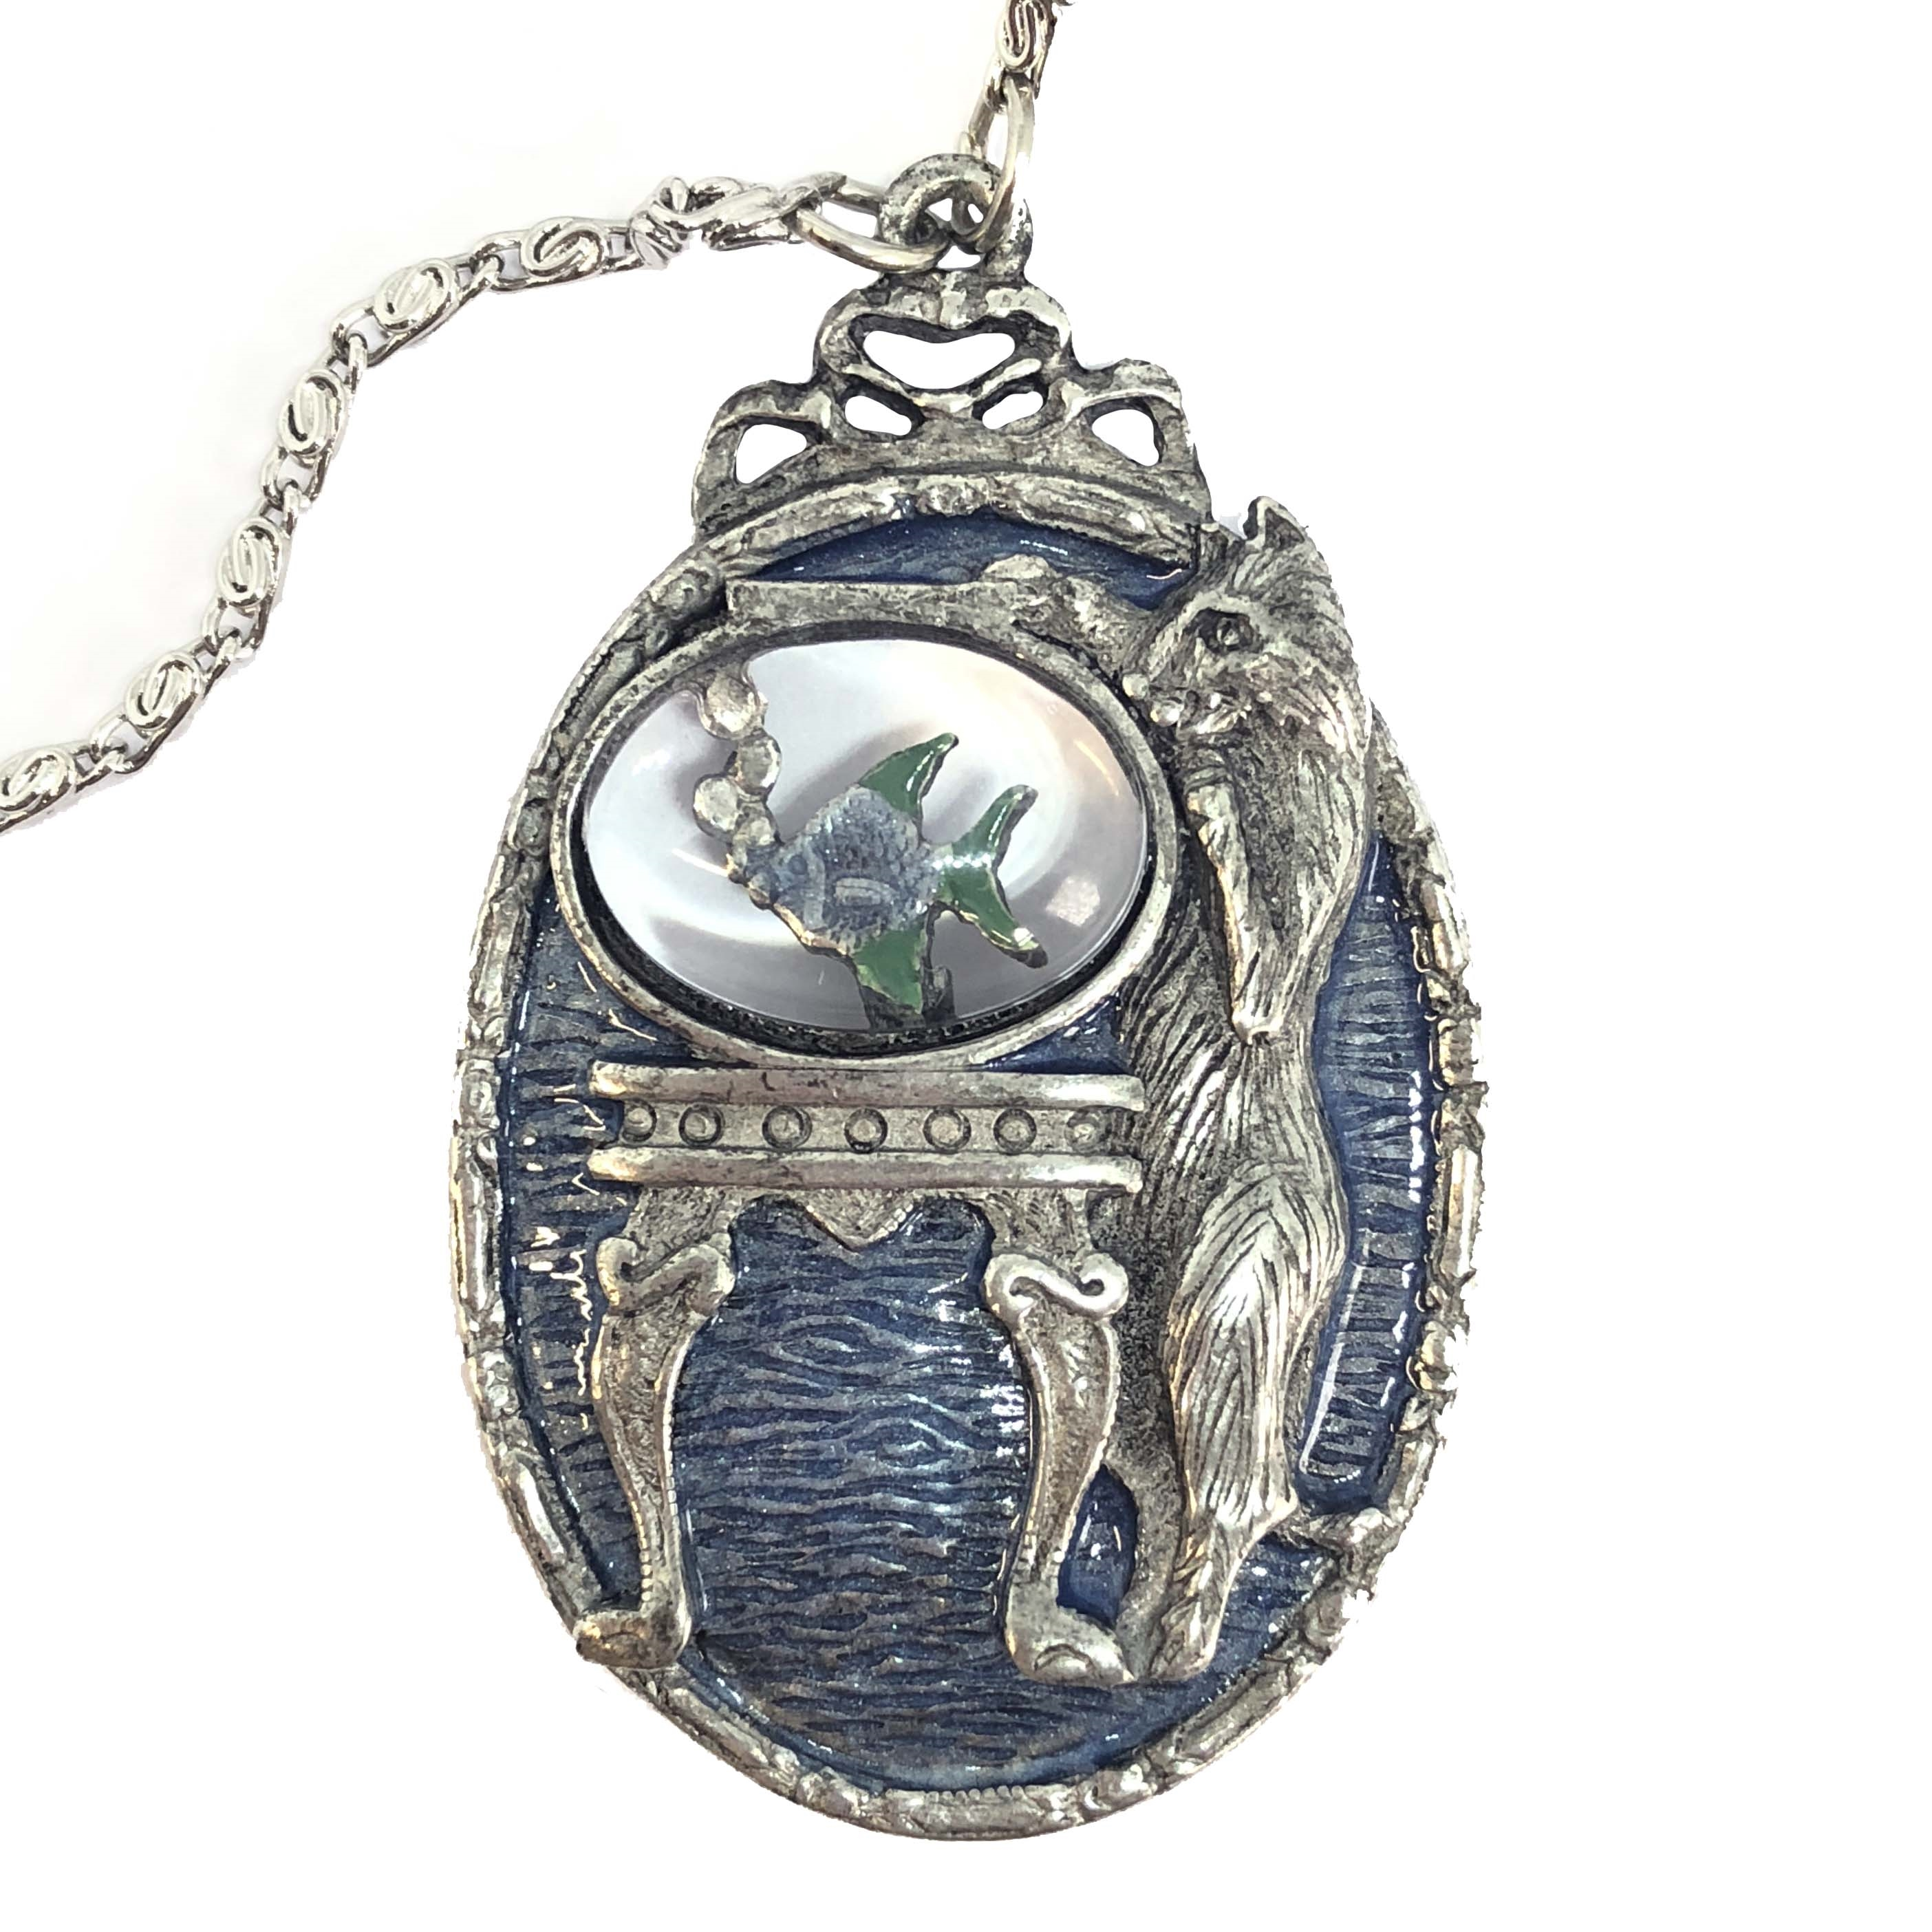 1928 Jewelry Company, cat pendant, necklace, cat necklace, kitty, silver plate, US made, made in the USA, silver plated pewter, 1928 pieces, B'sue by 1928, B'sue Boutiques, 1928/08406